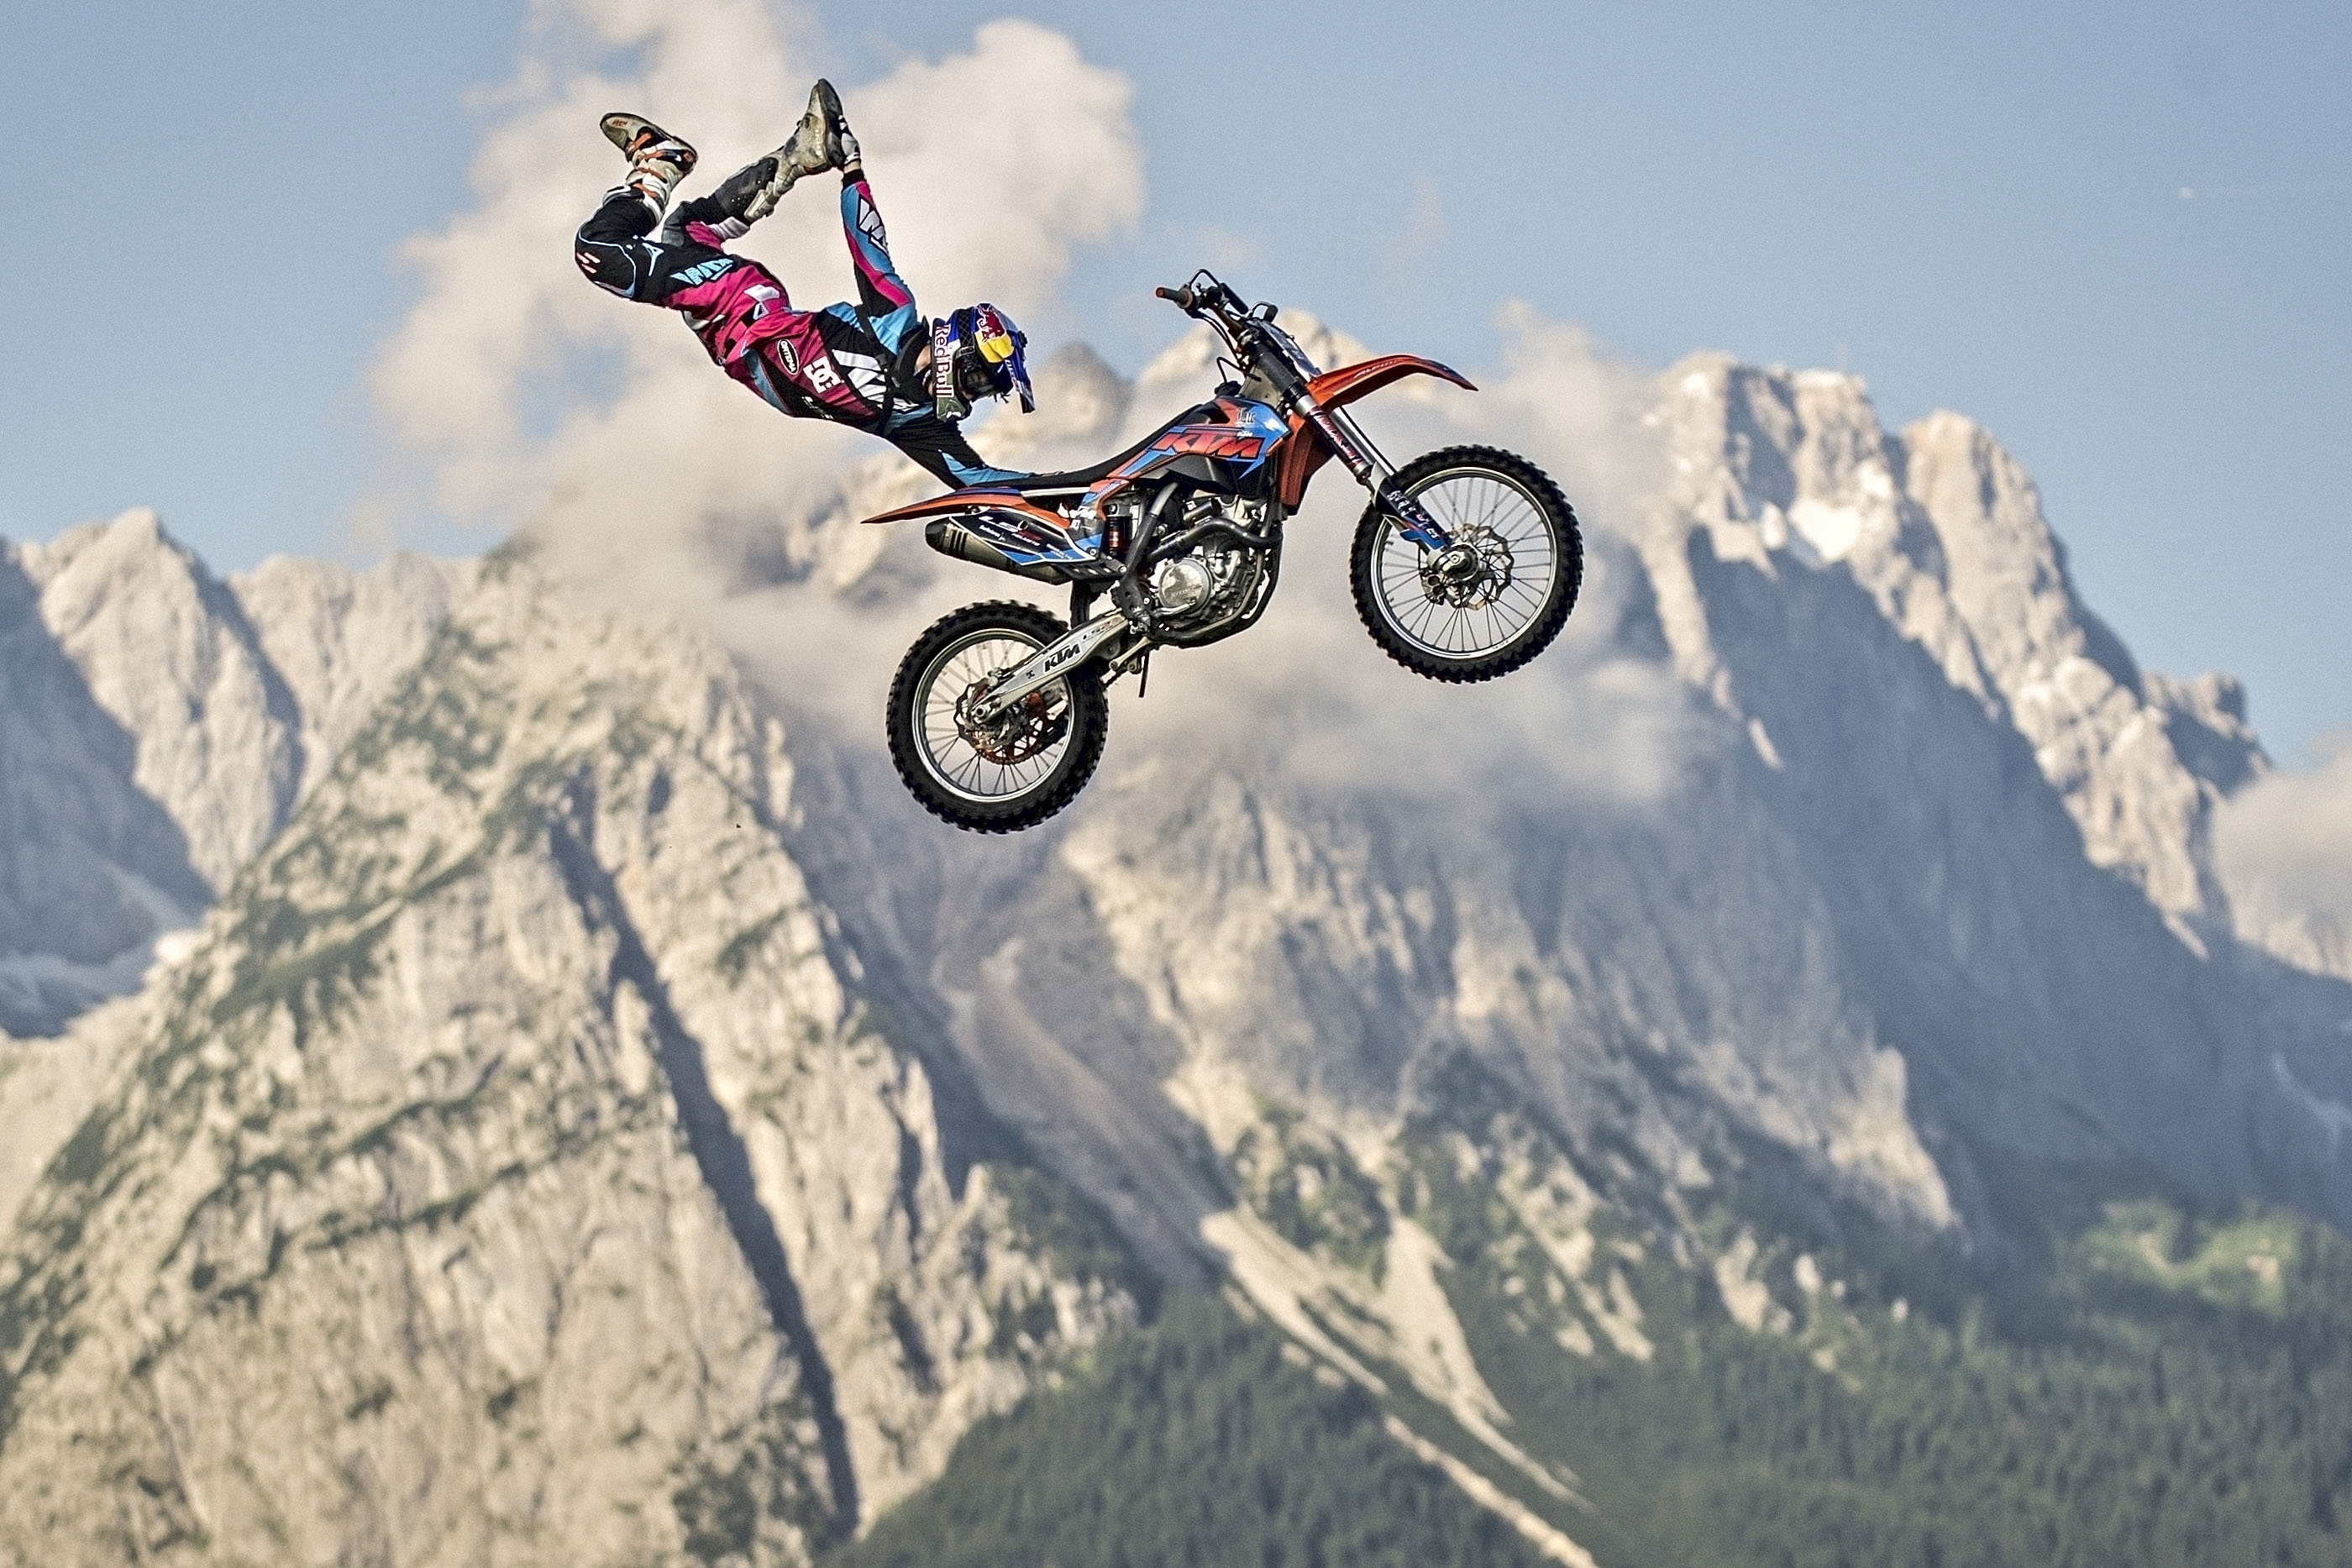 10 Extreme Motor Sports for Thrill Seekers | HowStuffWorks